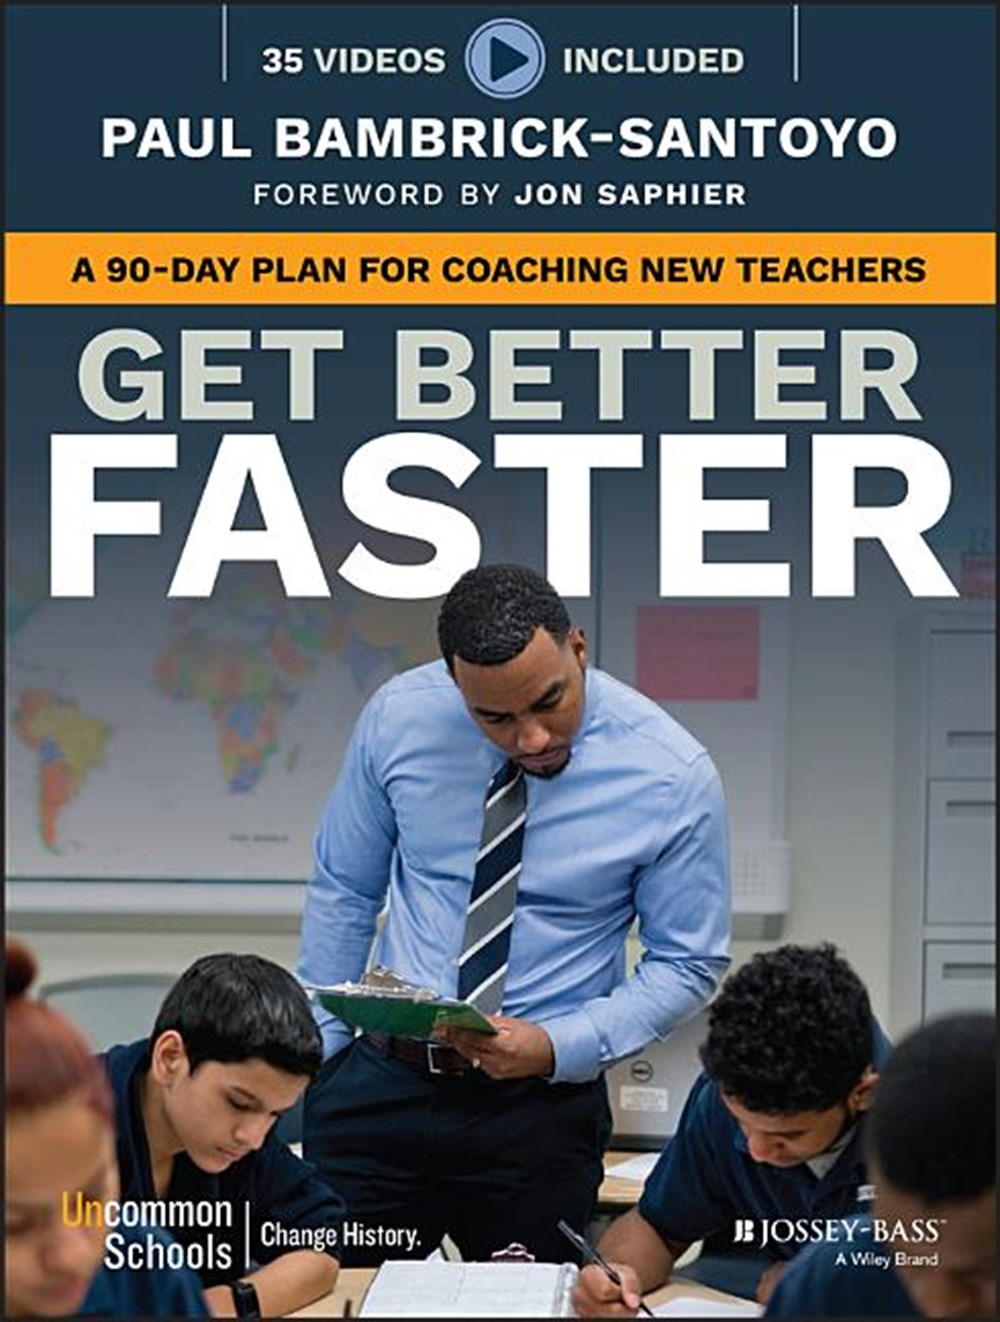 Get Better Faster A 90-Day Plan for Coaching New Teachers